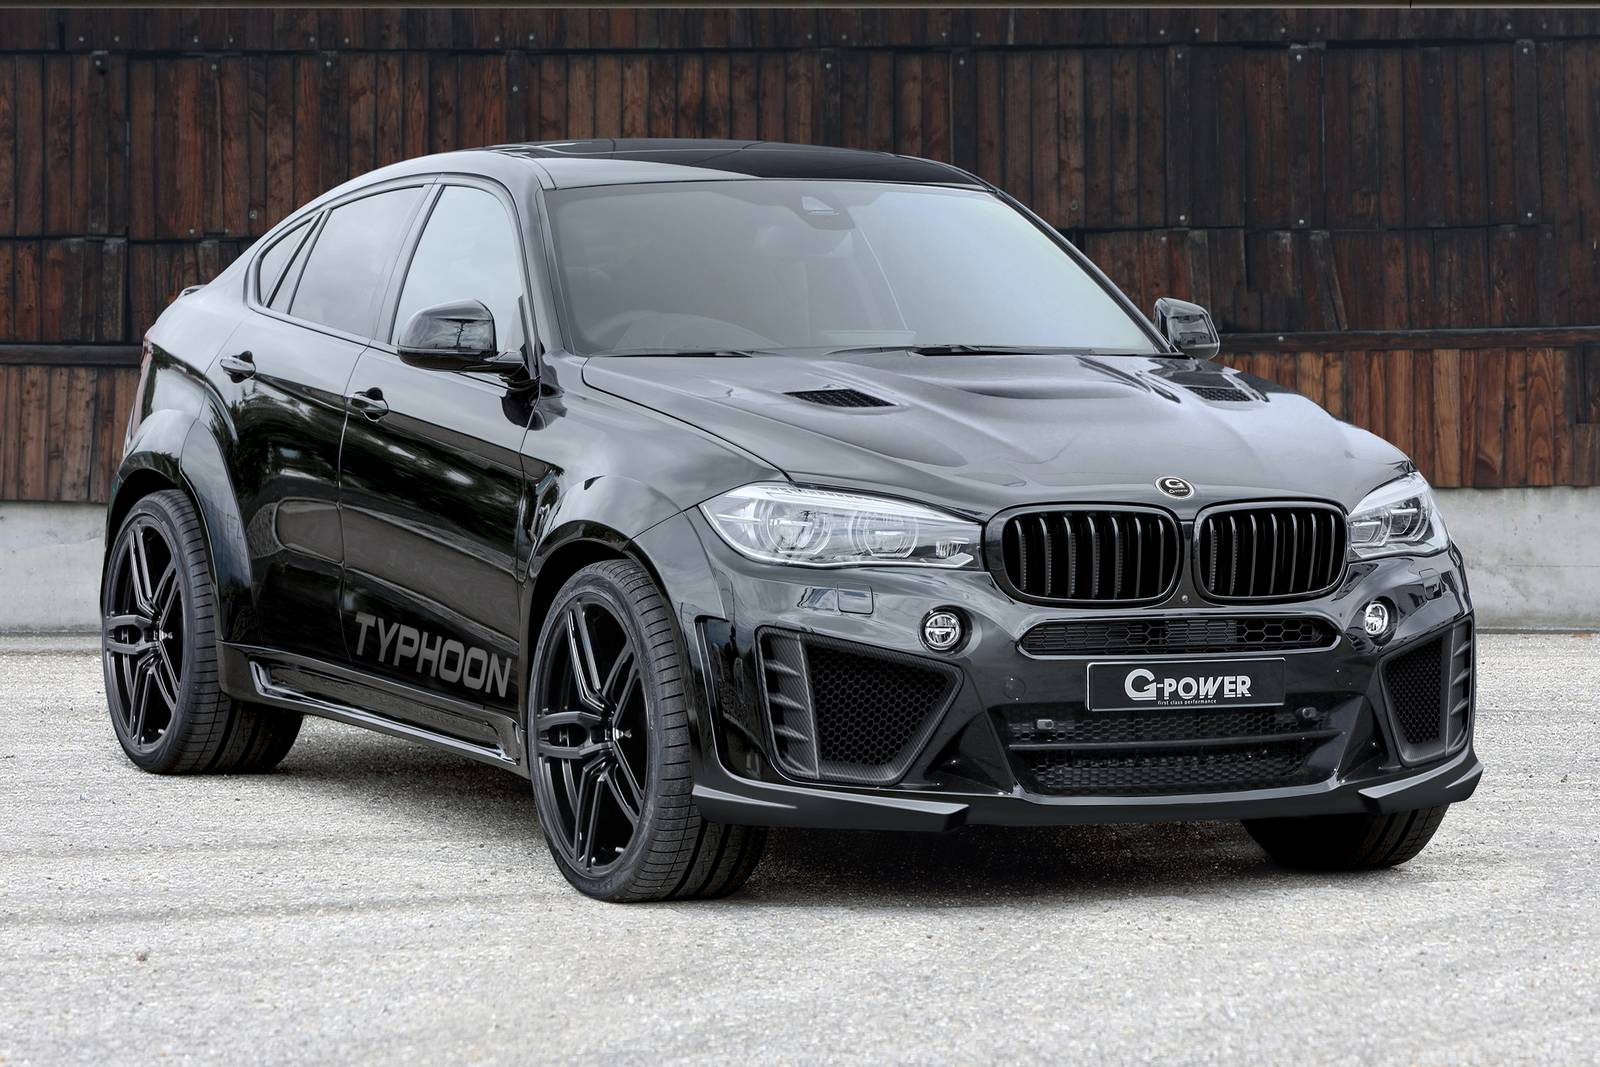 2012 BMW X6 M GPower Typhoon WideBody Z3Rides